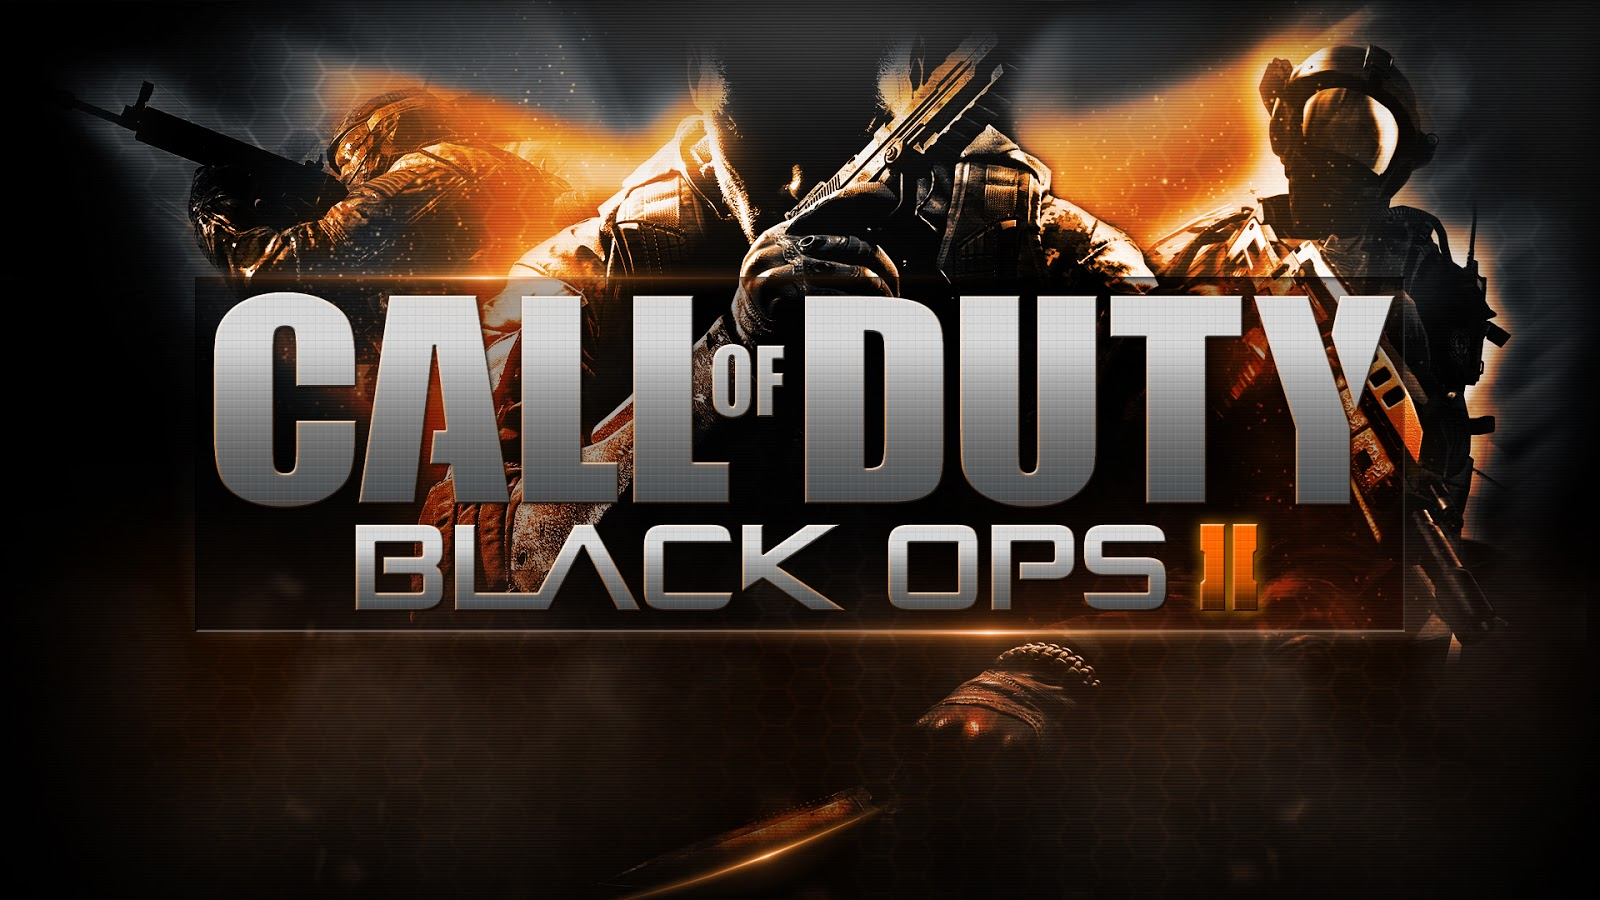 GTA 5/Black Ops 2/Halo 4 into One Banner Request | Se7enSins Gaming Community